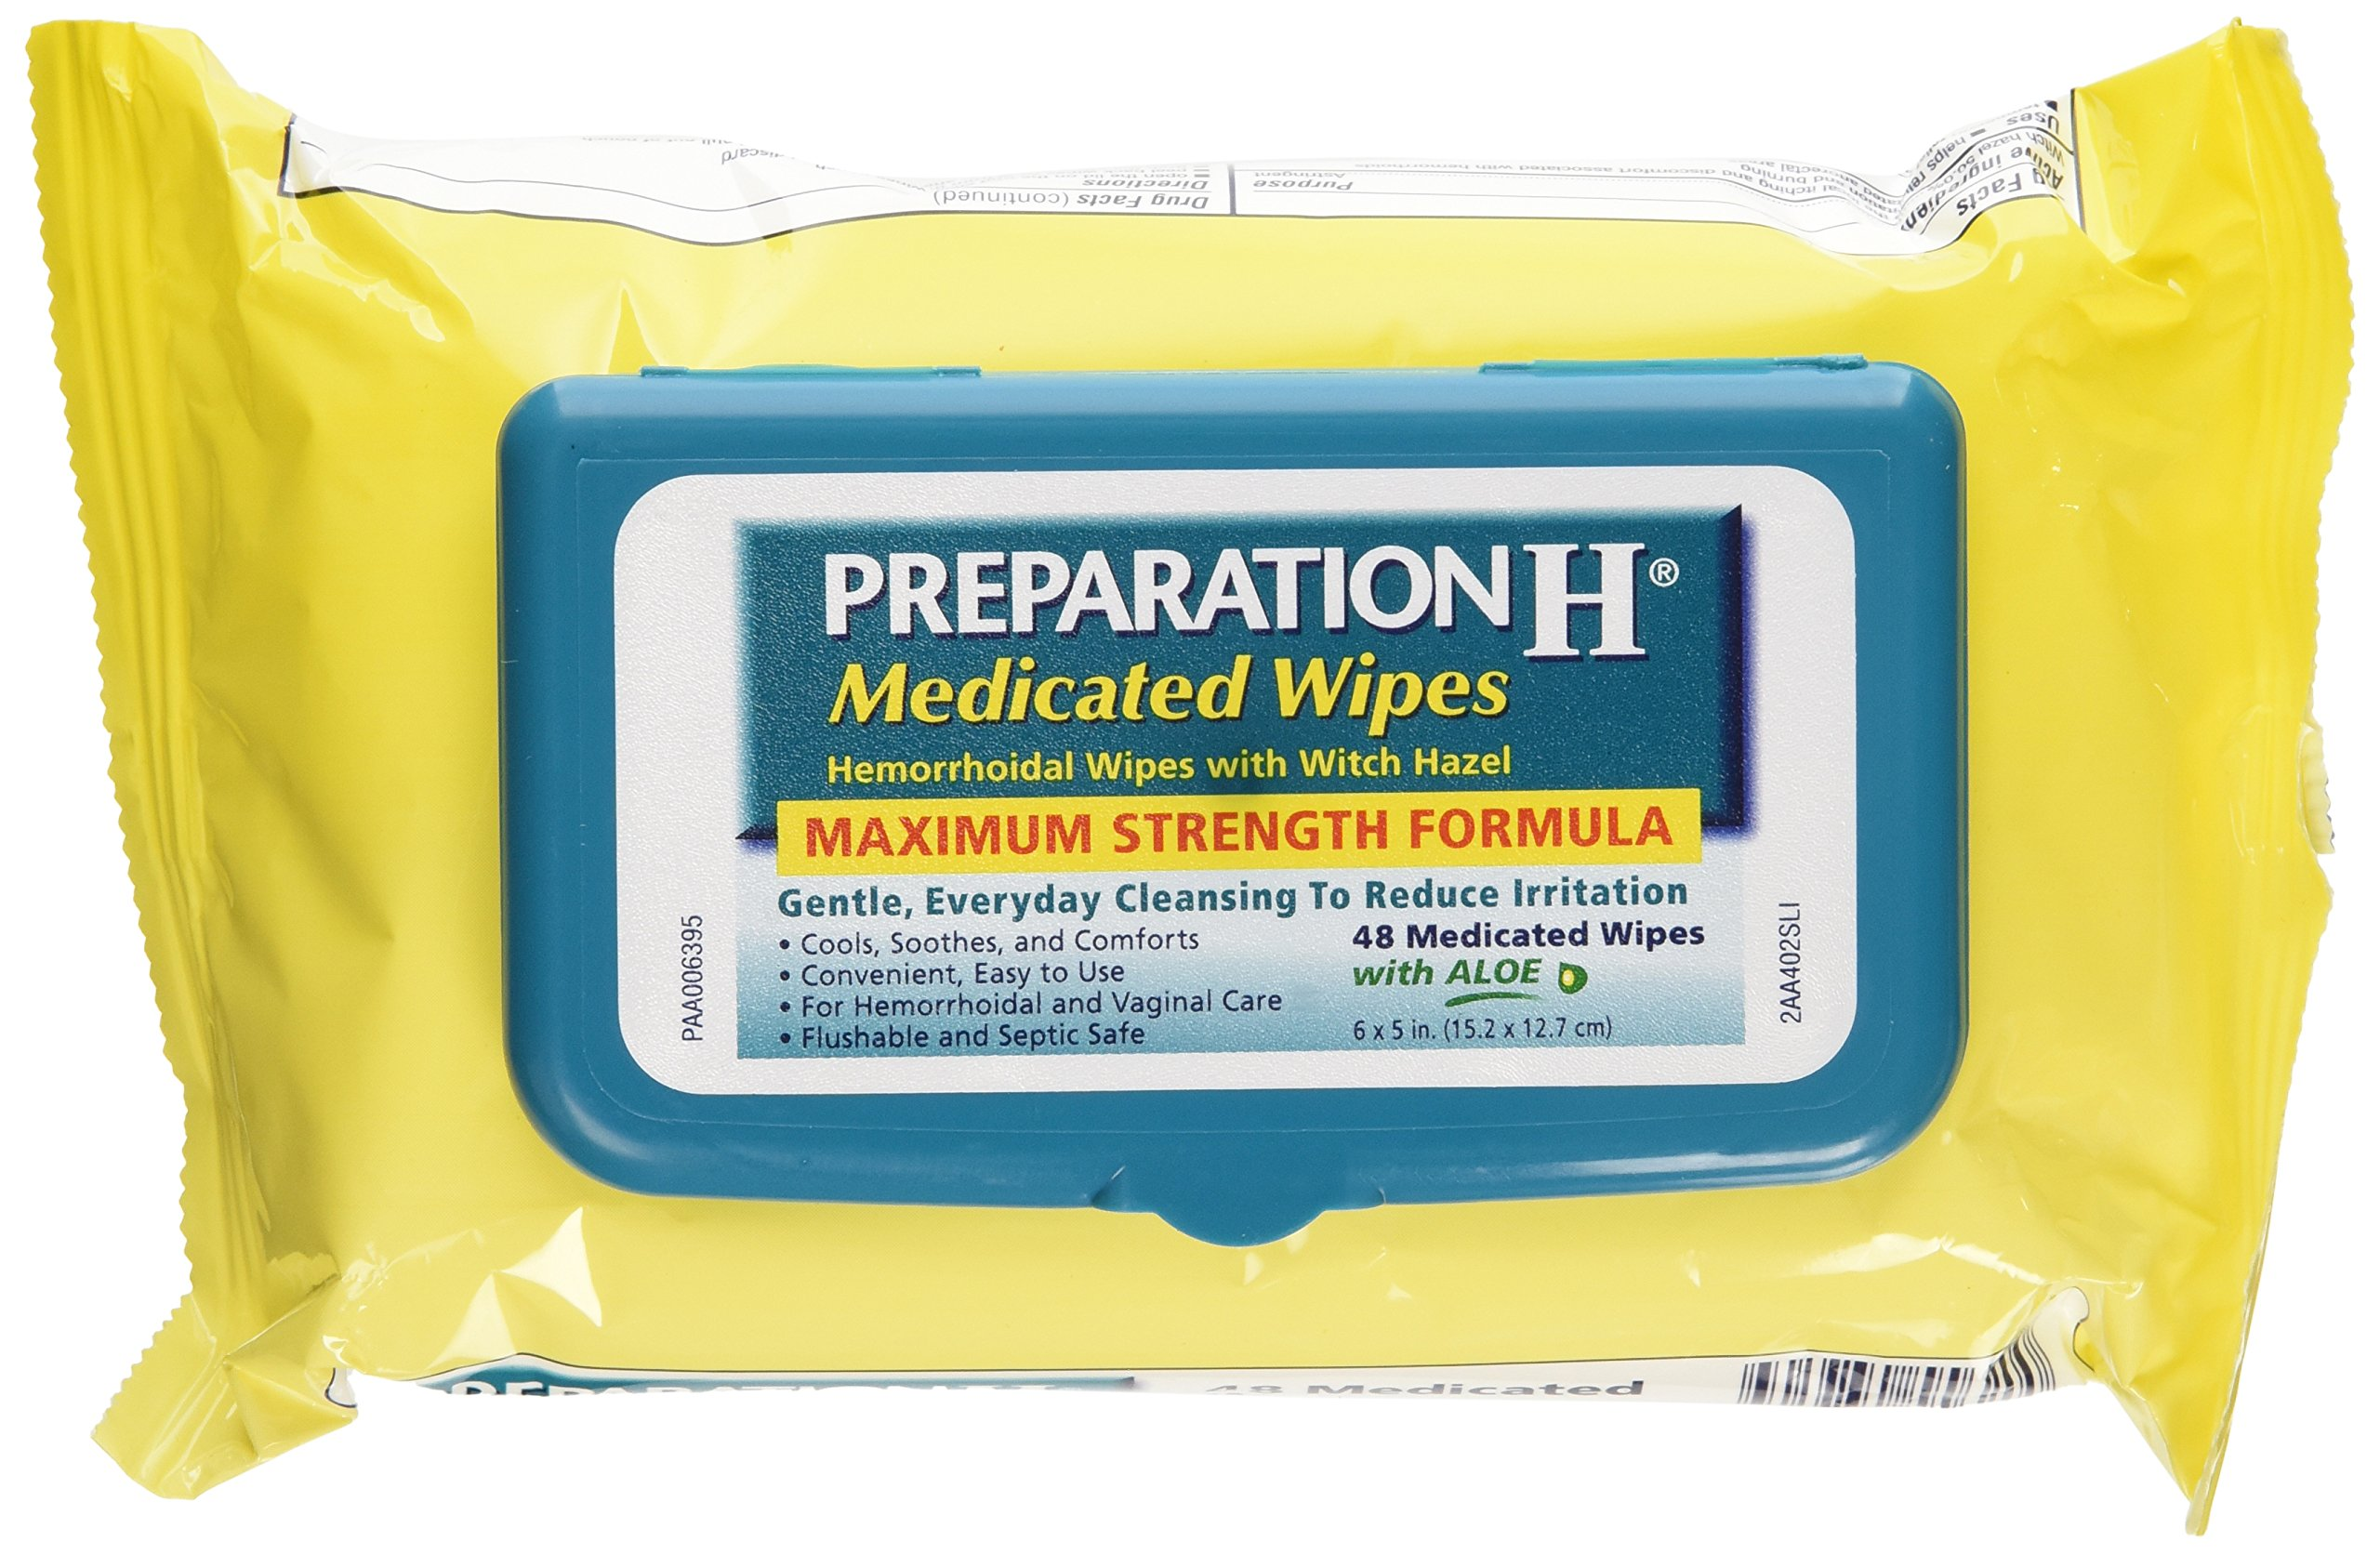 Preparation H Medicated Wipes 48 Ea (Pack Of 3) by Preparation H